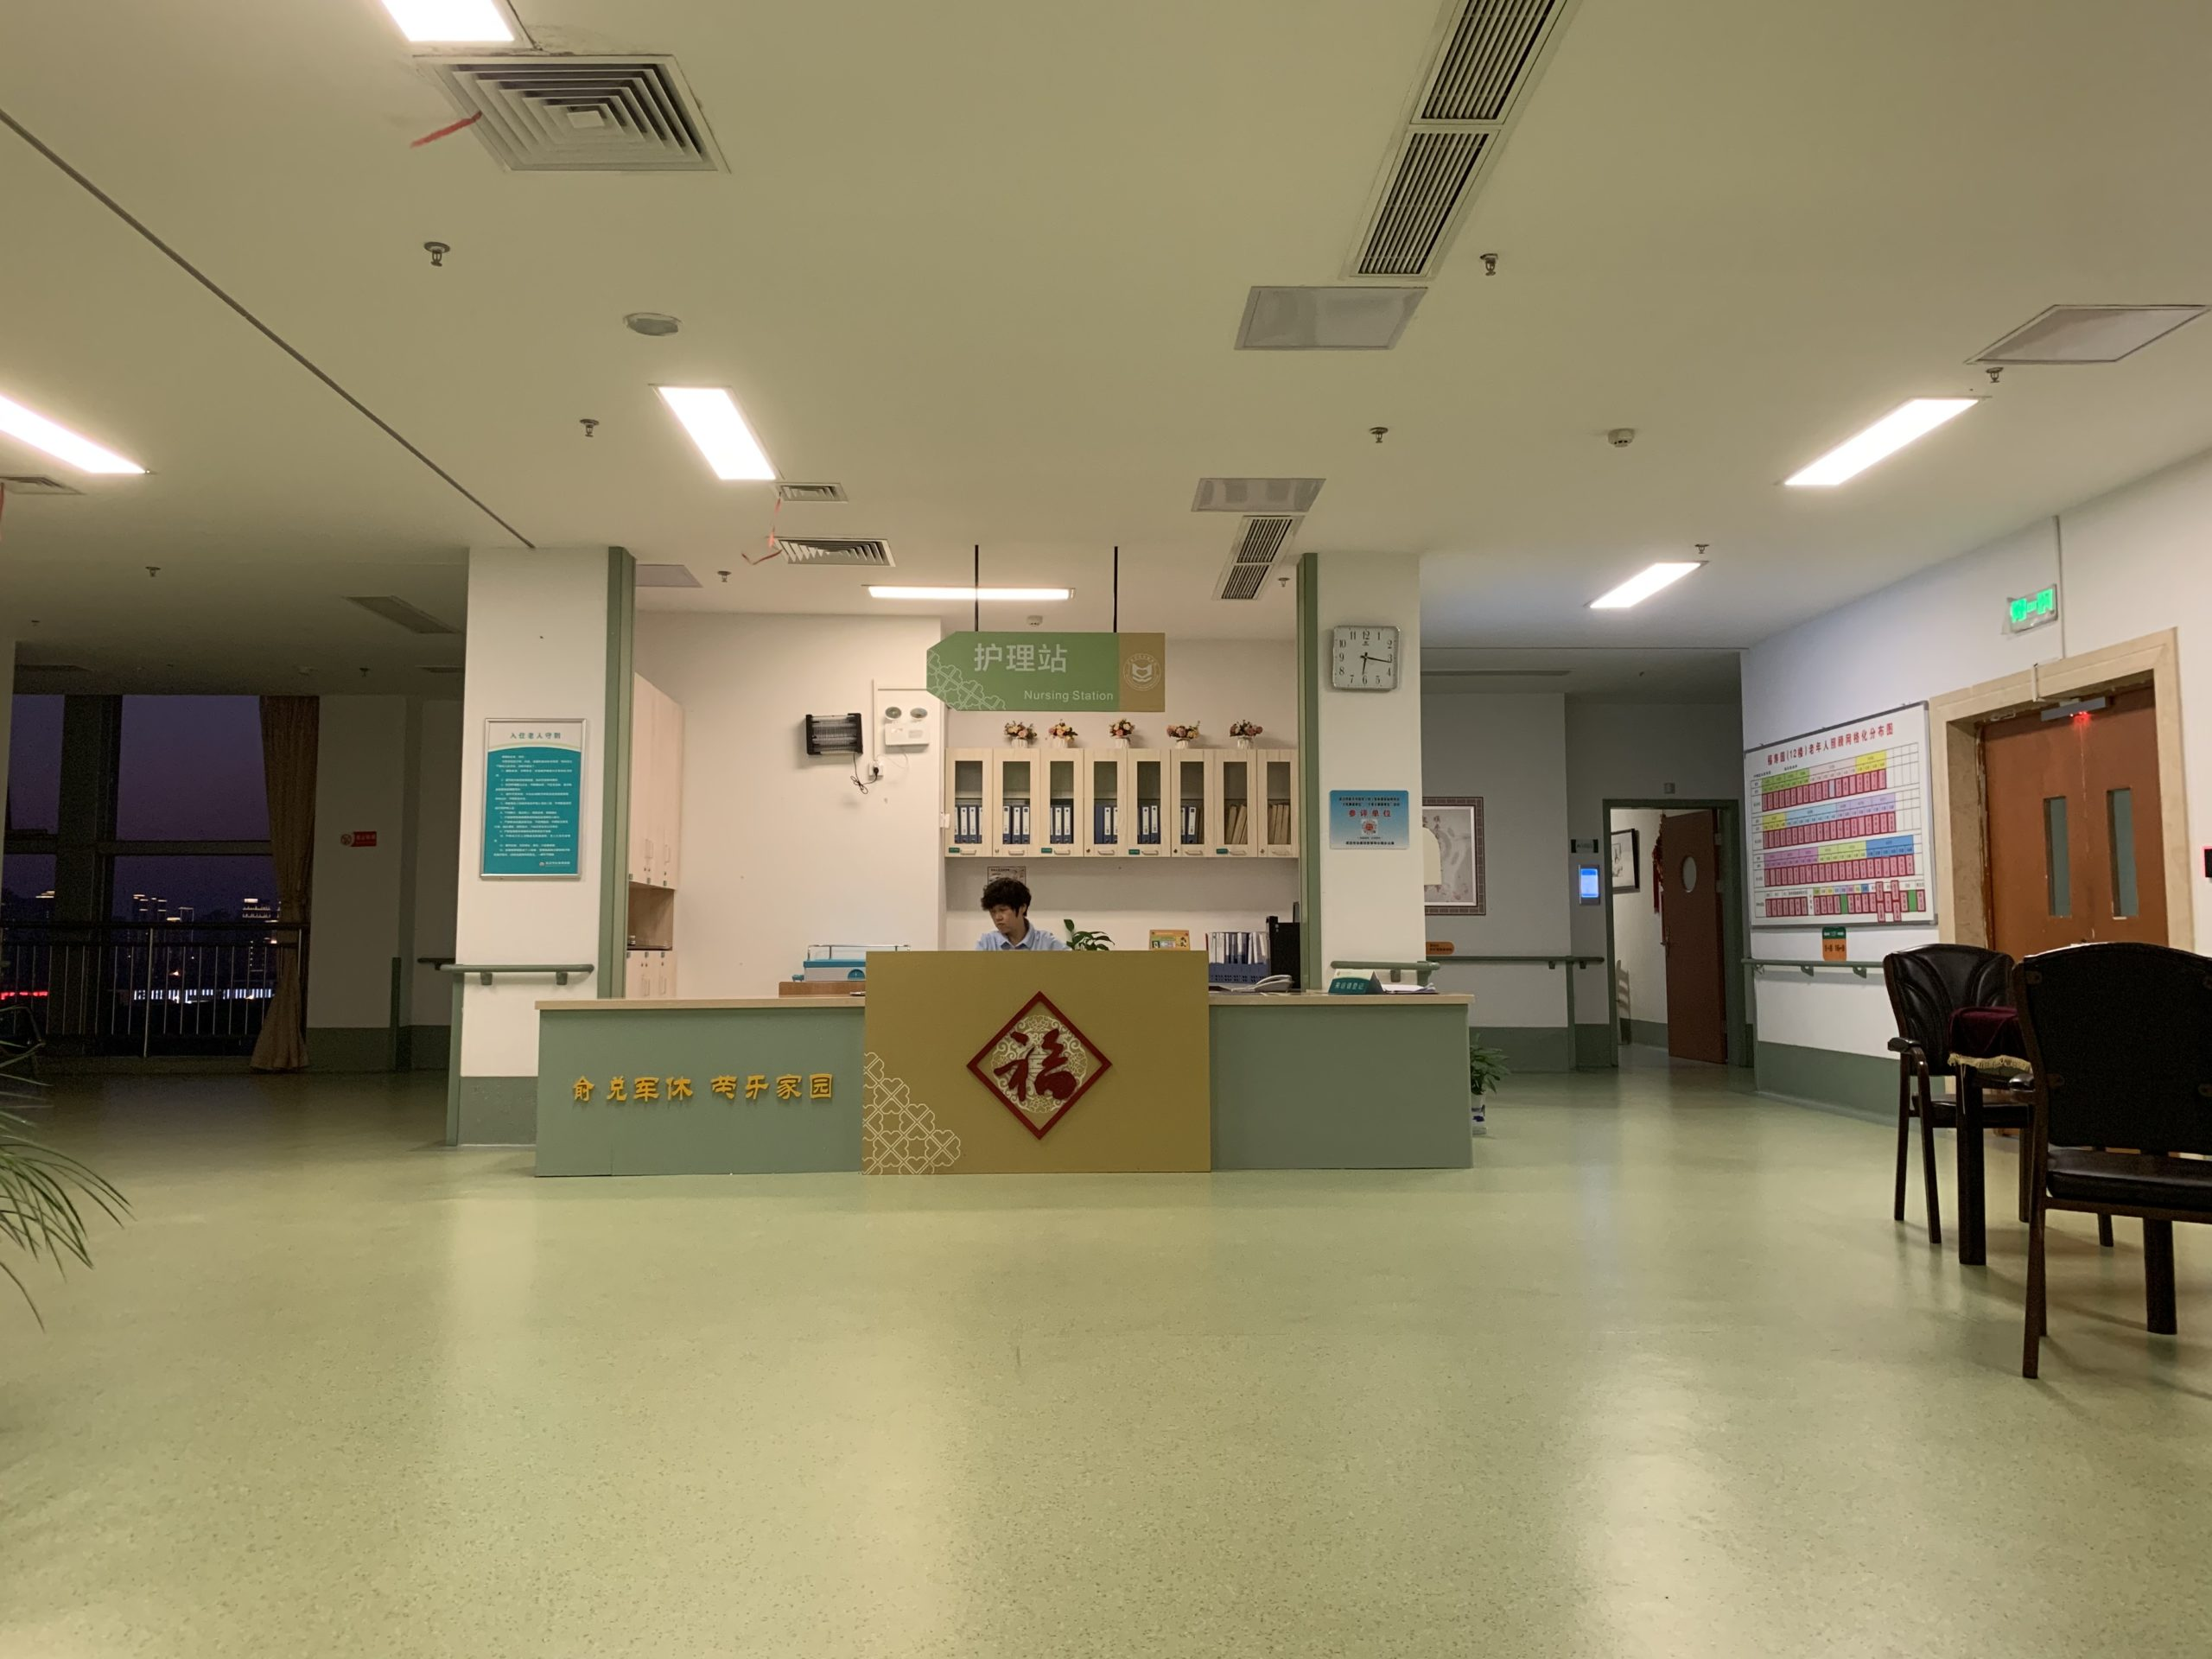 The front desk of a nursing home in China